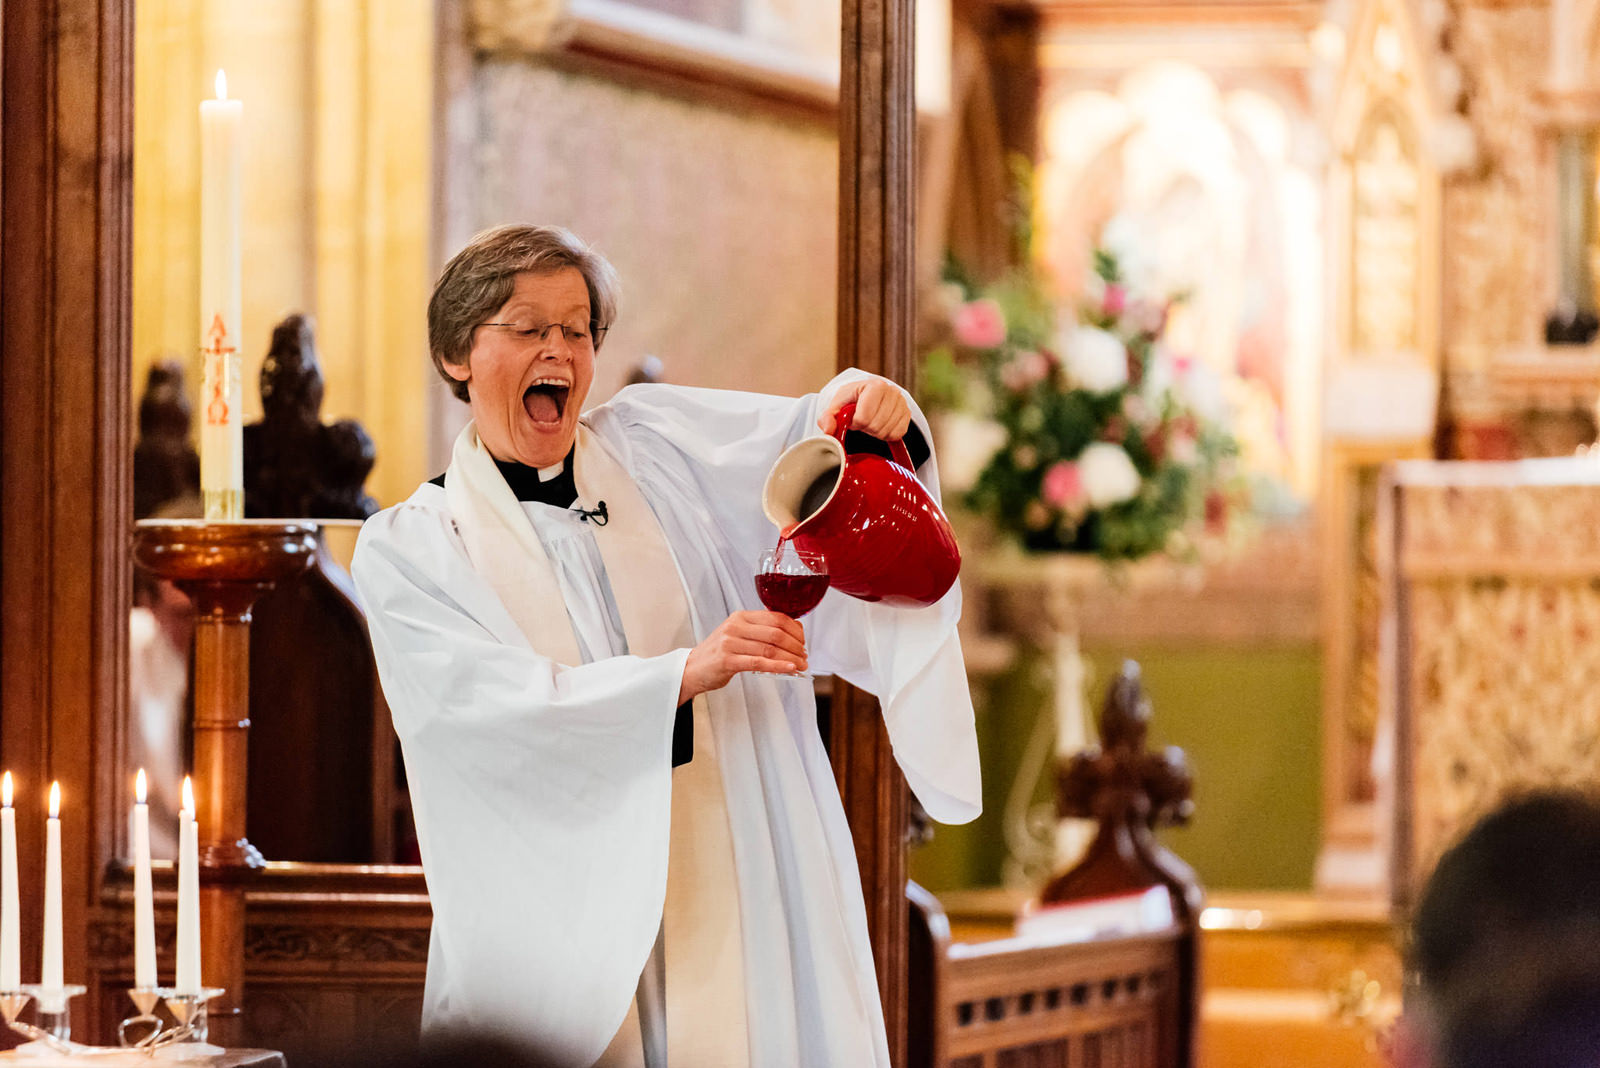 vicar changing water into wine (ribena)